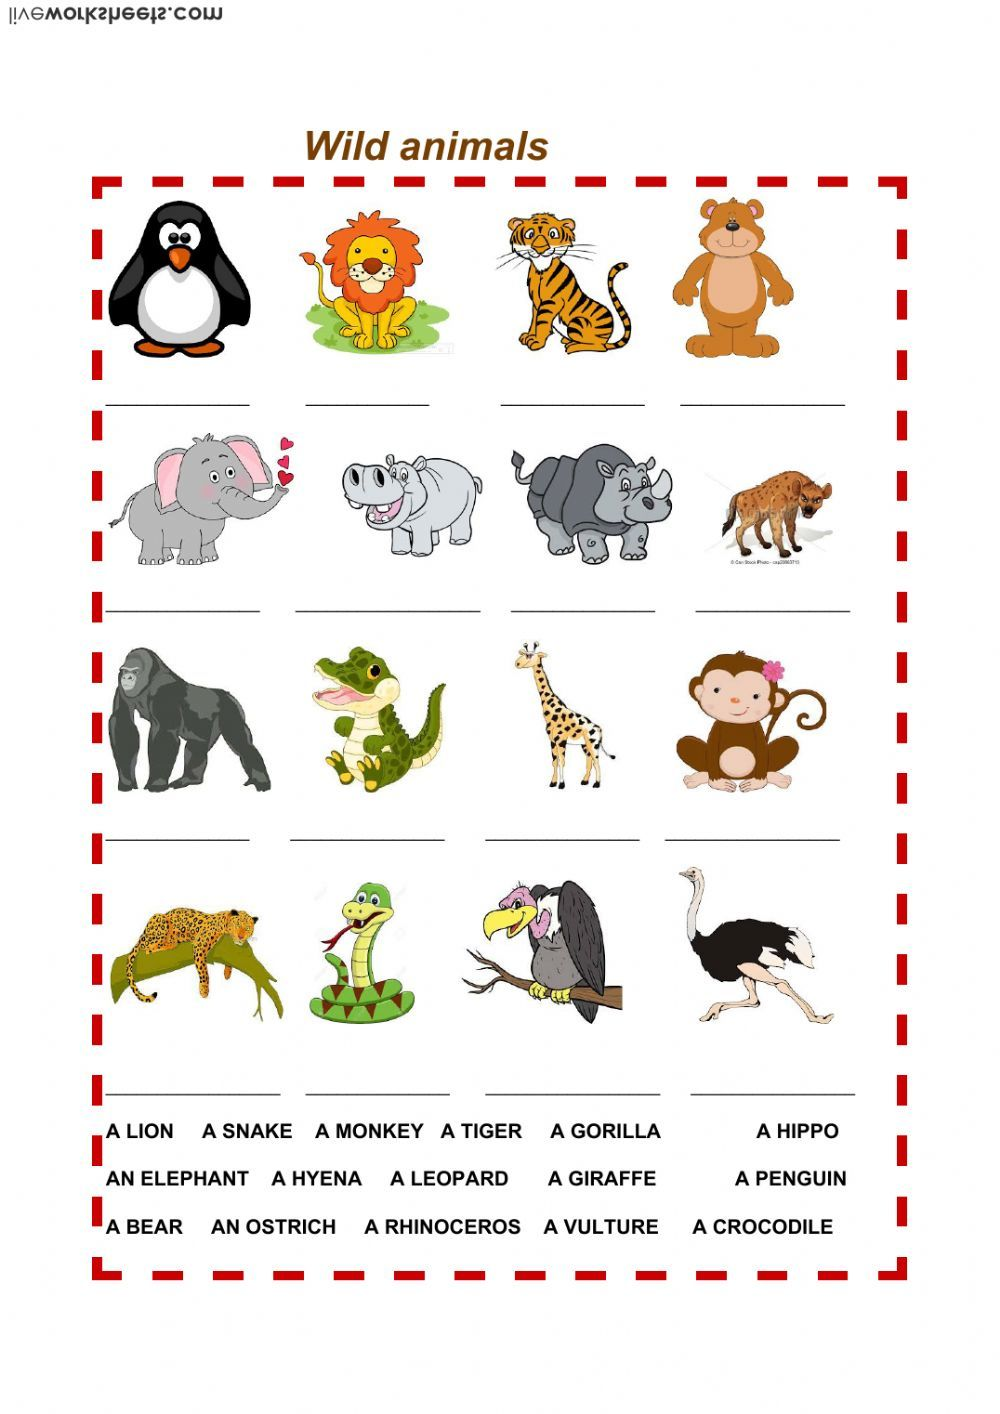 Animals Interactive And Downloadable Worksheet You Can Do The Exercises Online Or Download The Workshee Animals Wild Kindergarten Worksheets Animal Worksheets [ 1414 x 1000 Pixel ]